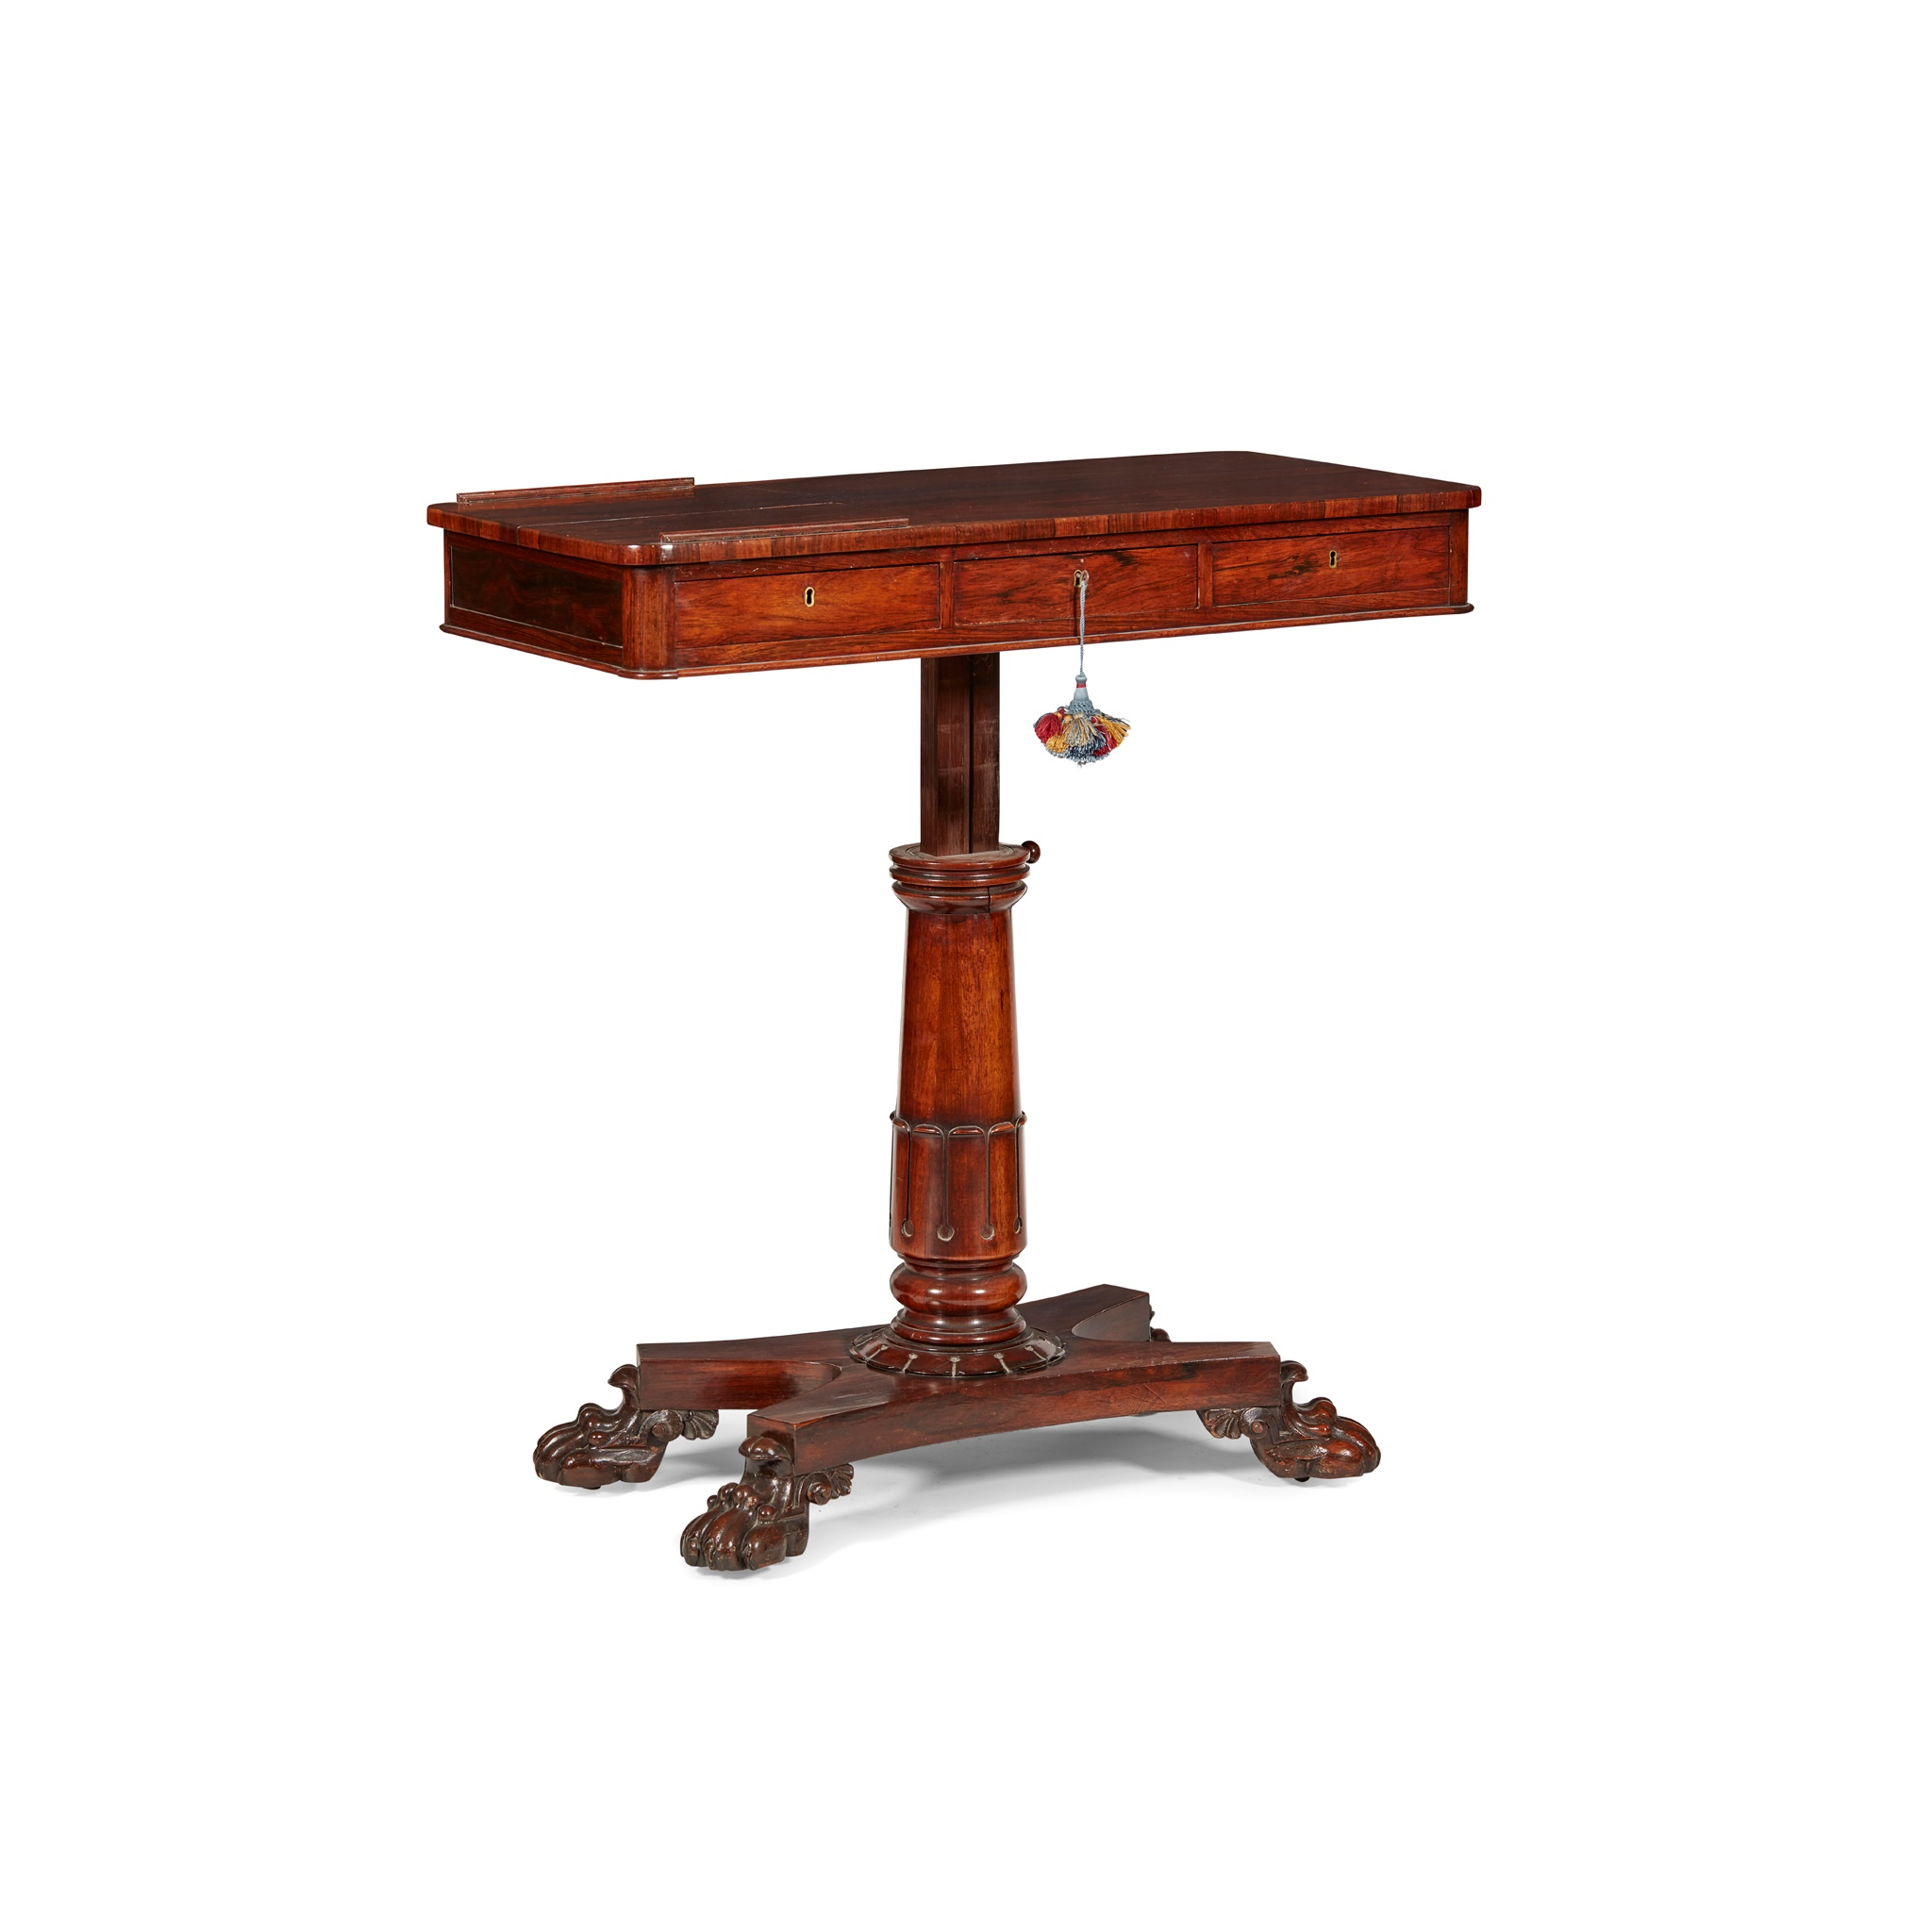 Y GEORGE IV ROSEWOOD READING TABLE EARLY 19TH CENTURY - Image 3 of 4